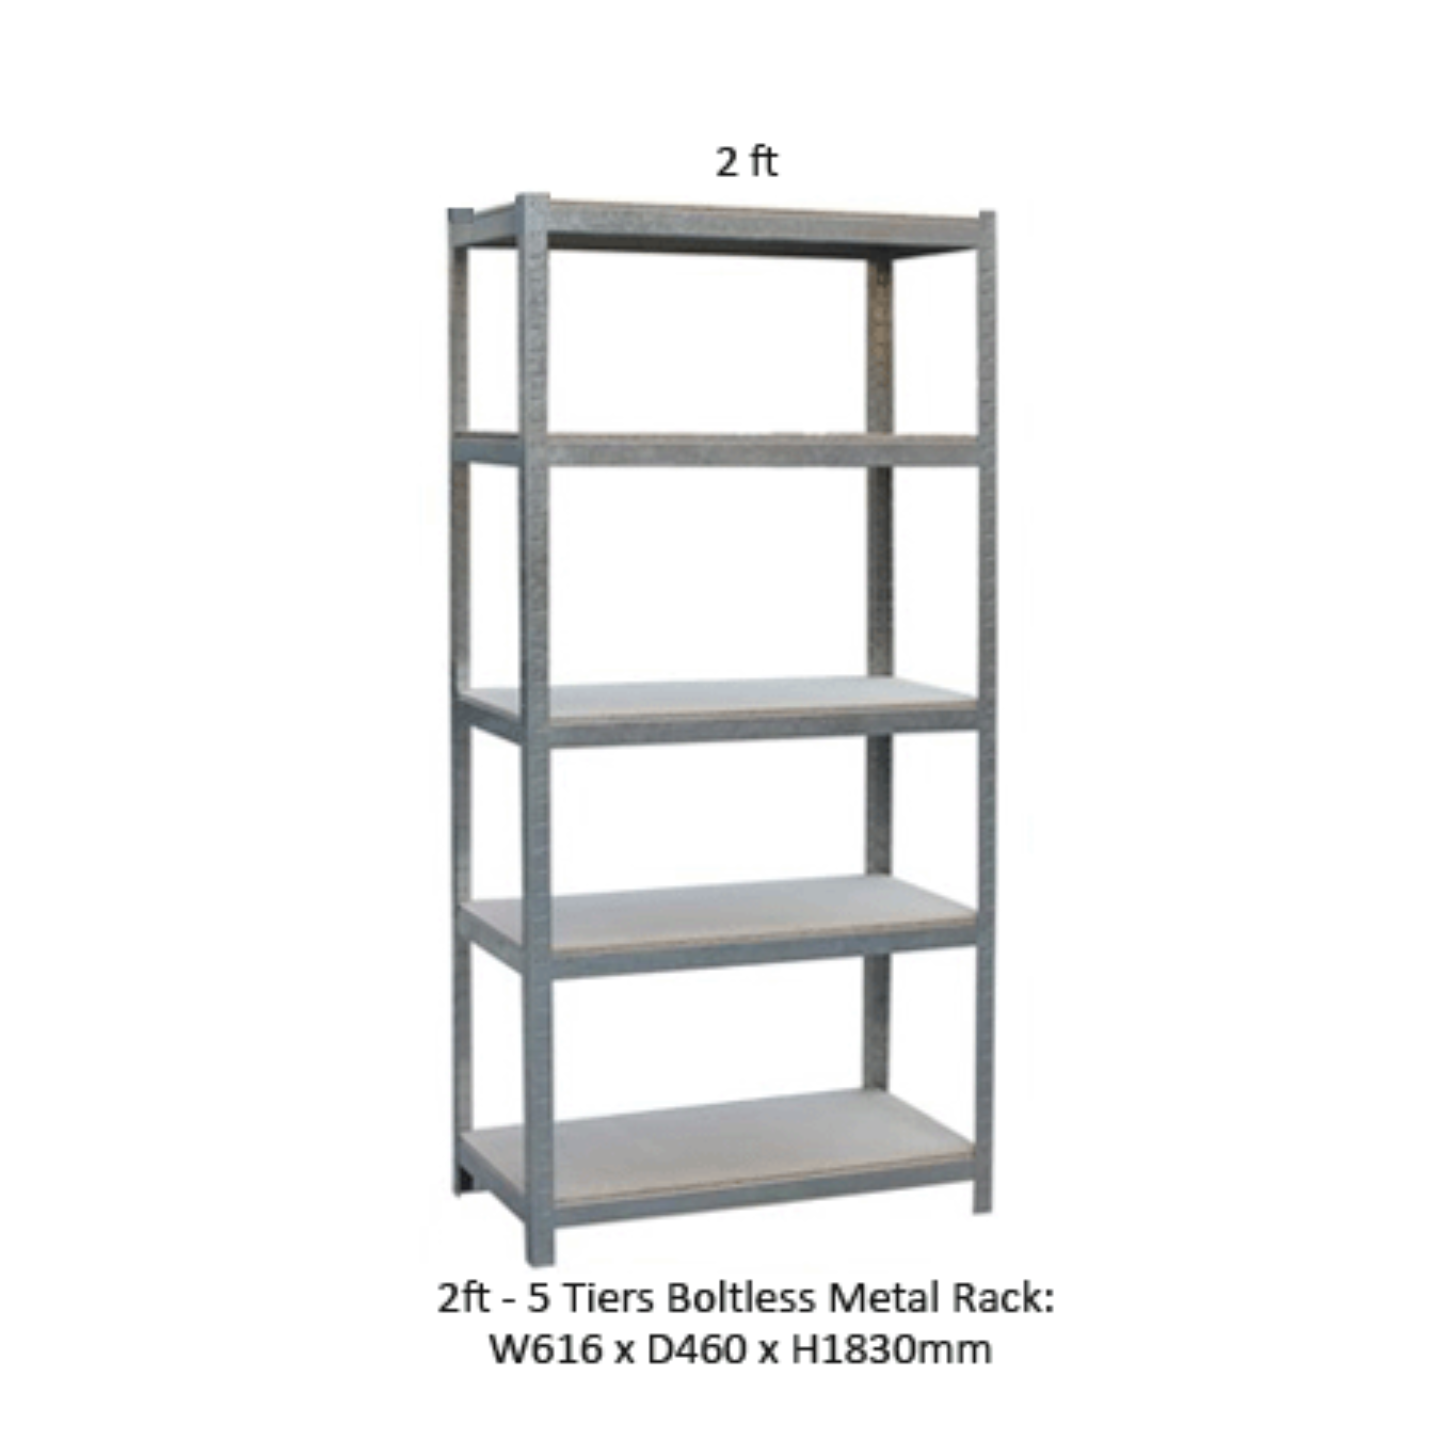 5 Tier Boltless Rack (Grey-2FT)